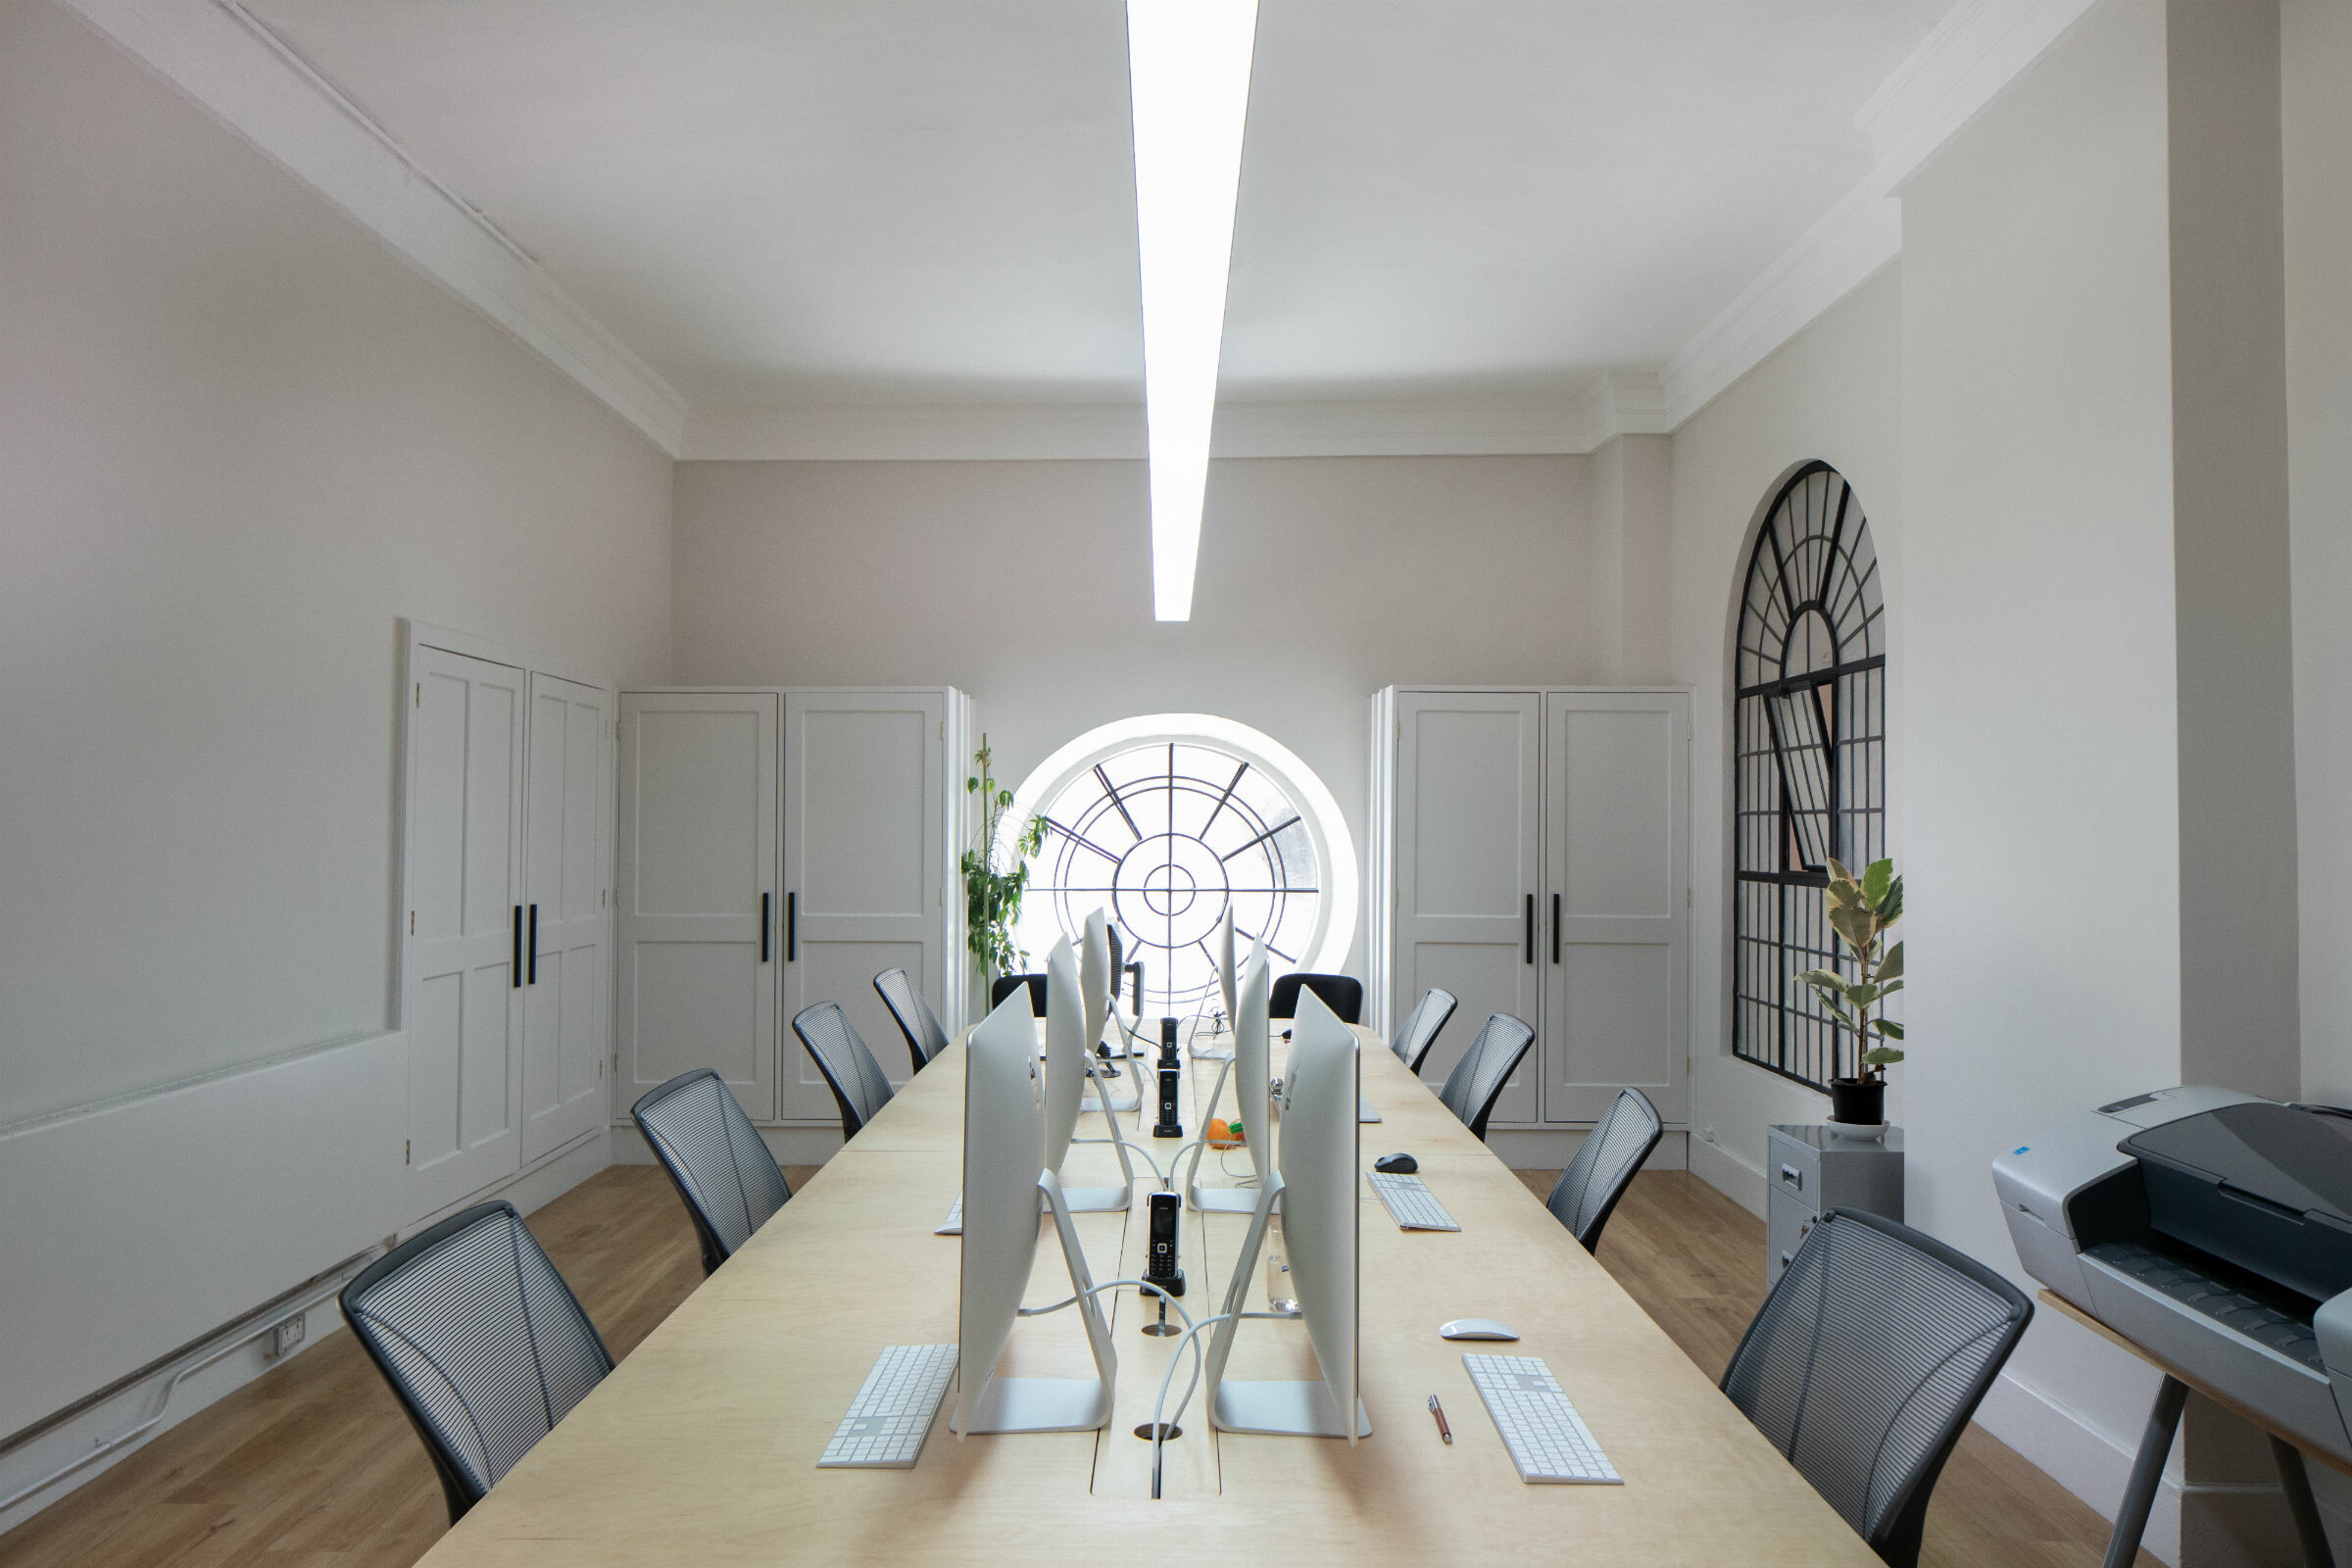 Long desk with iMacs with a round leaded window at the end